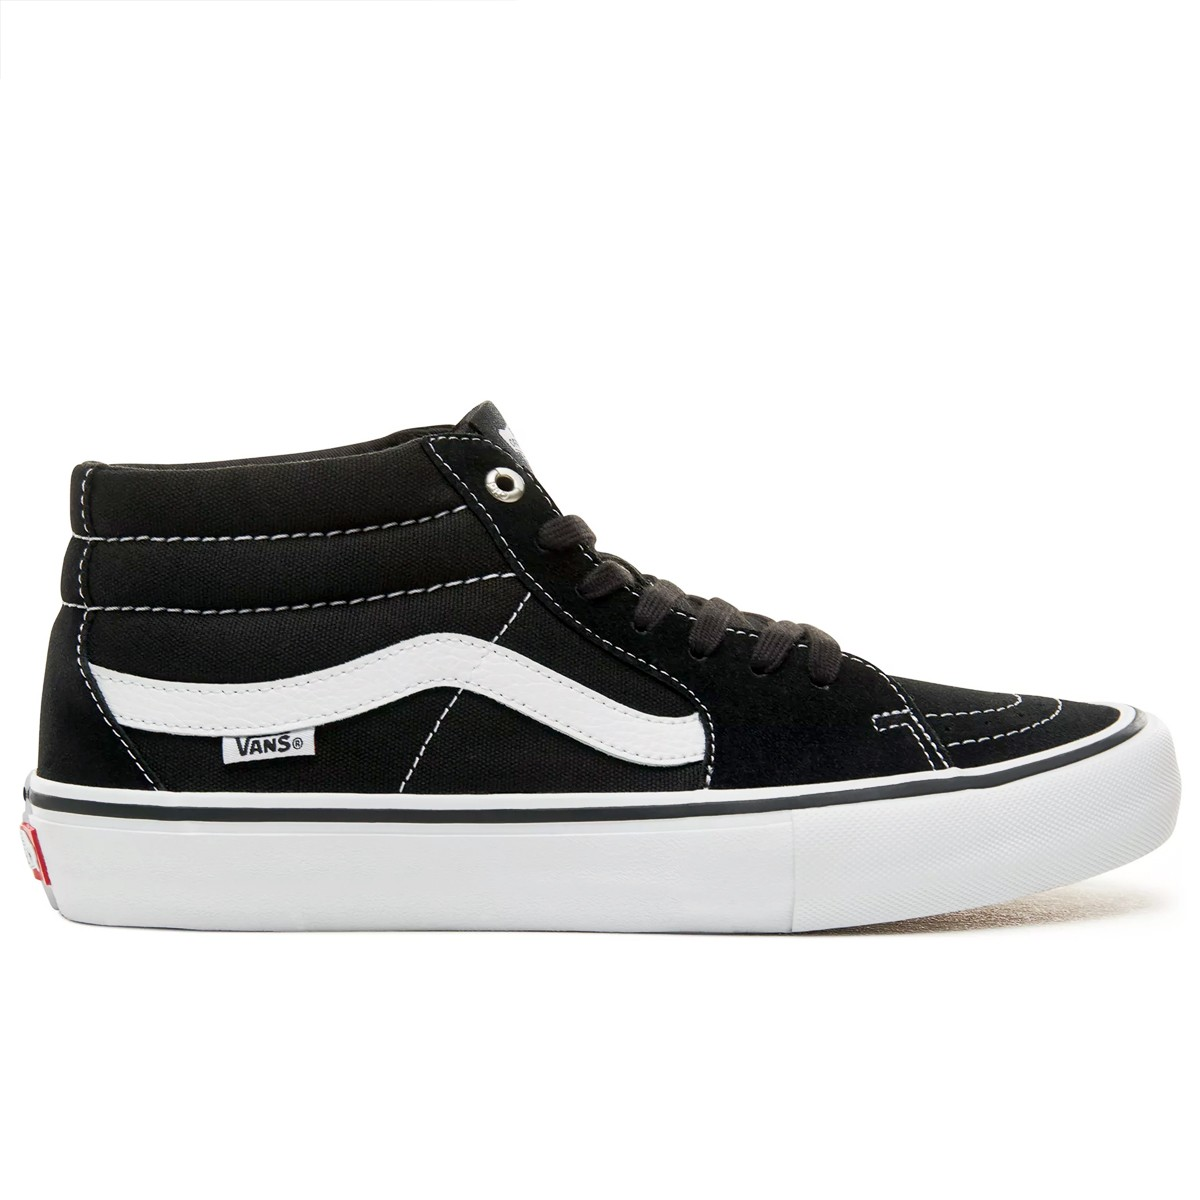 Vans Mid Top Sneakers Clearance Sale, UP TO 50% OFF